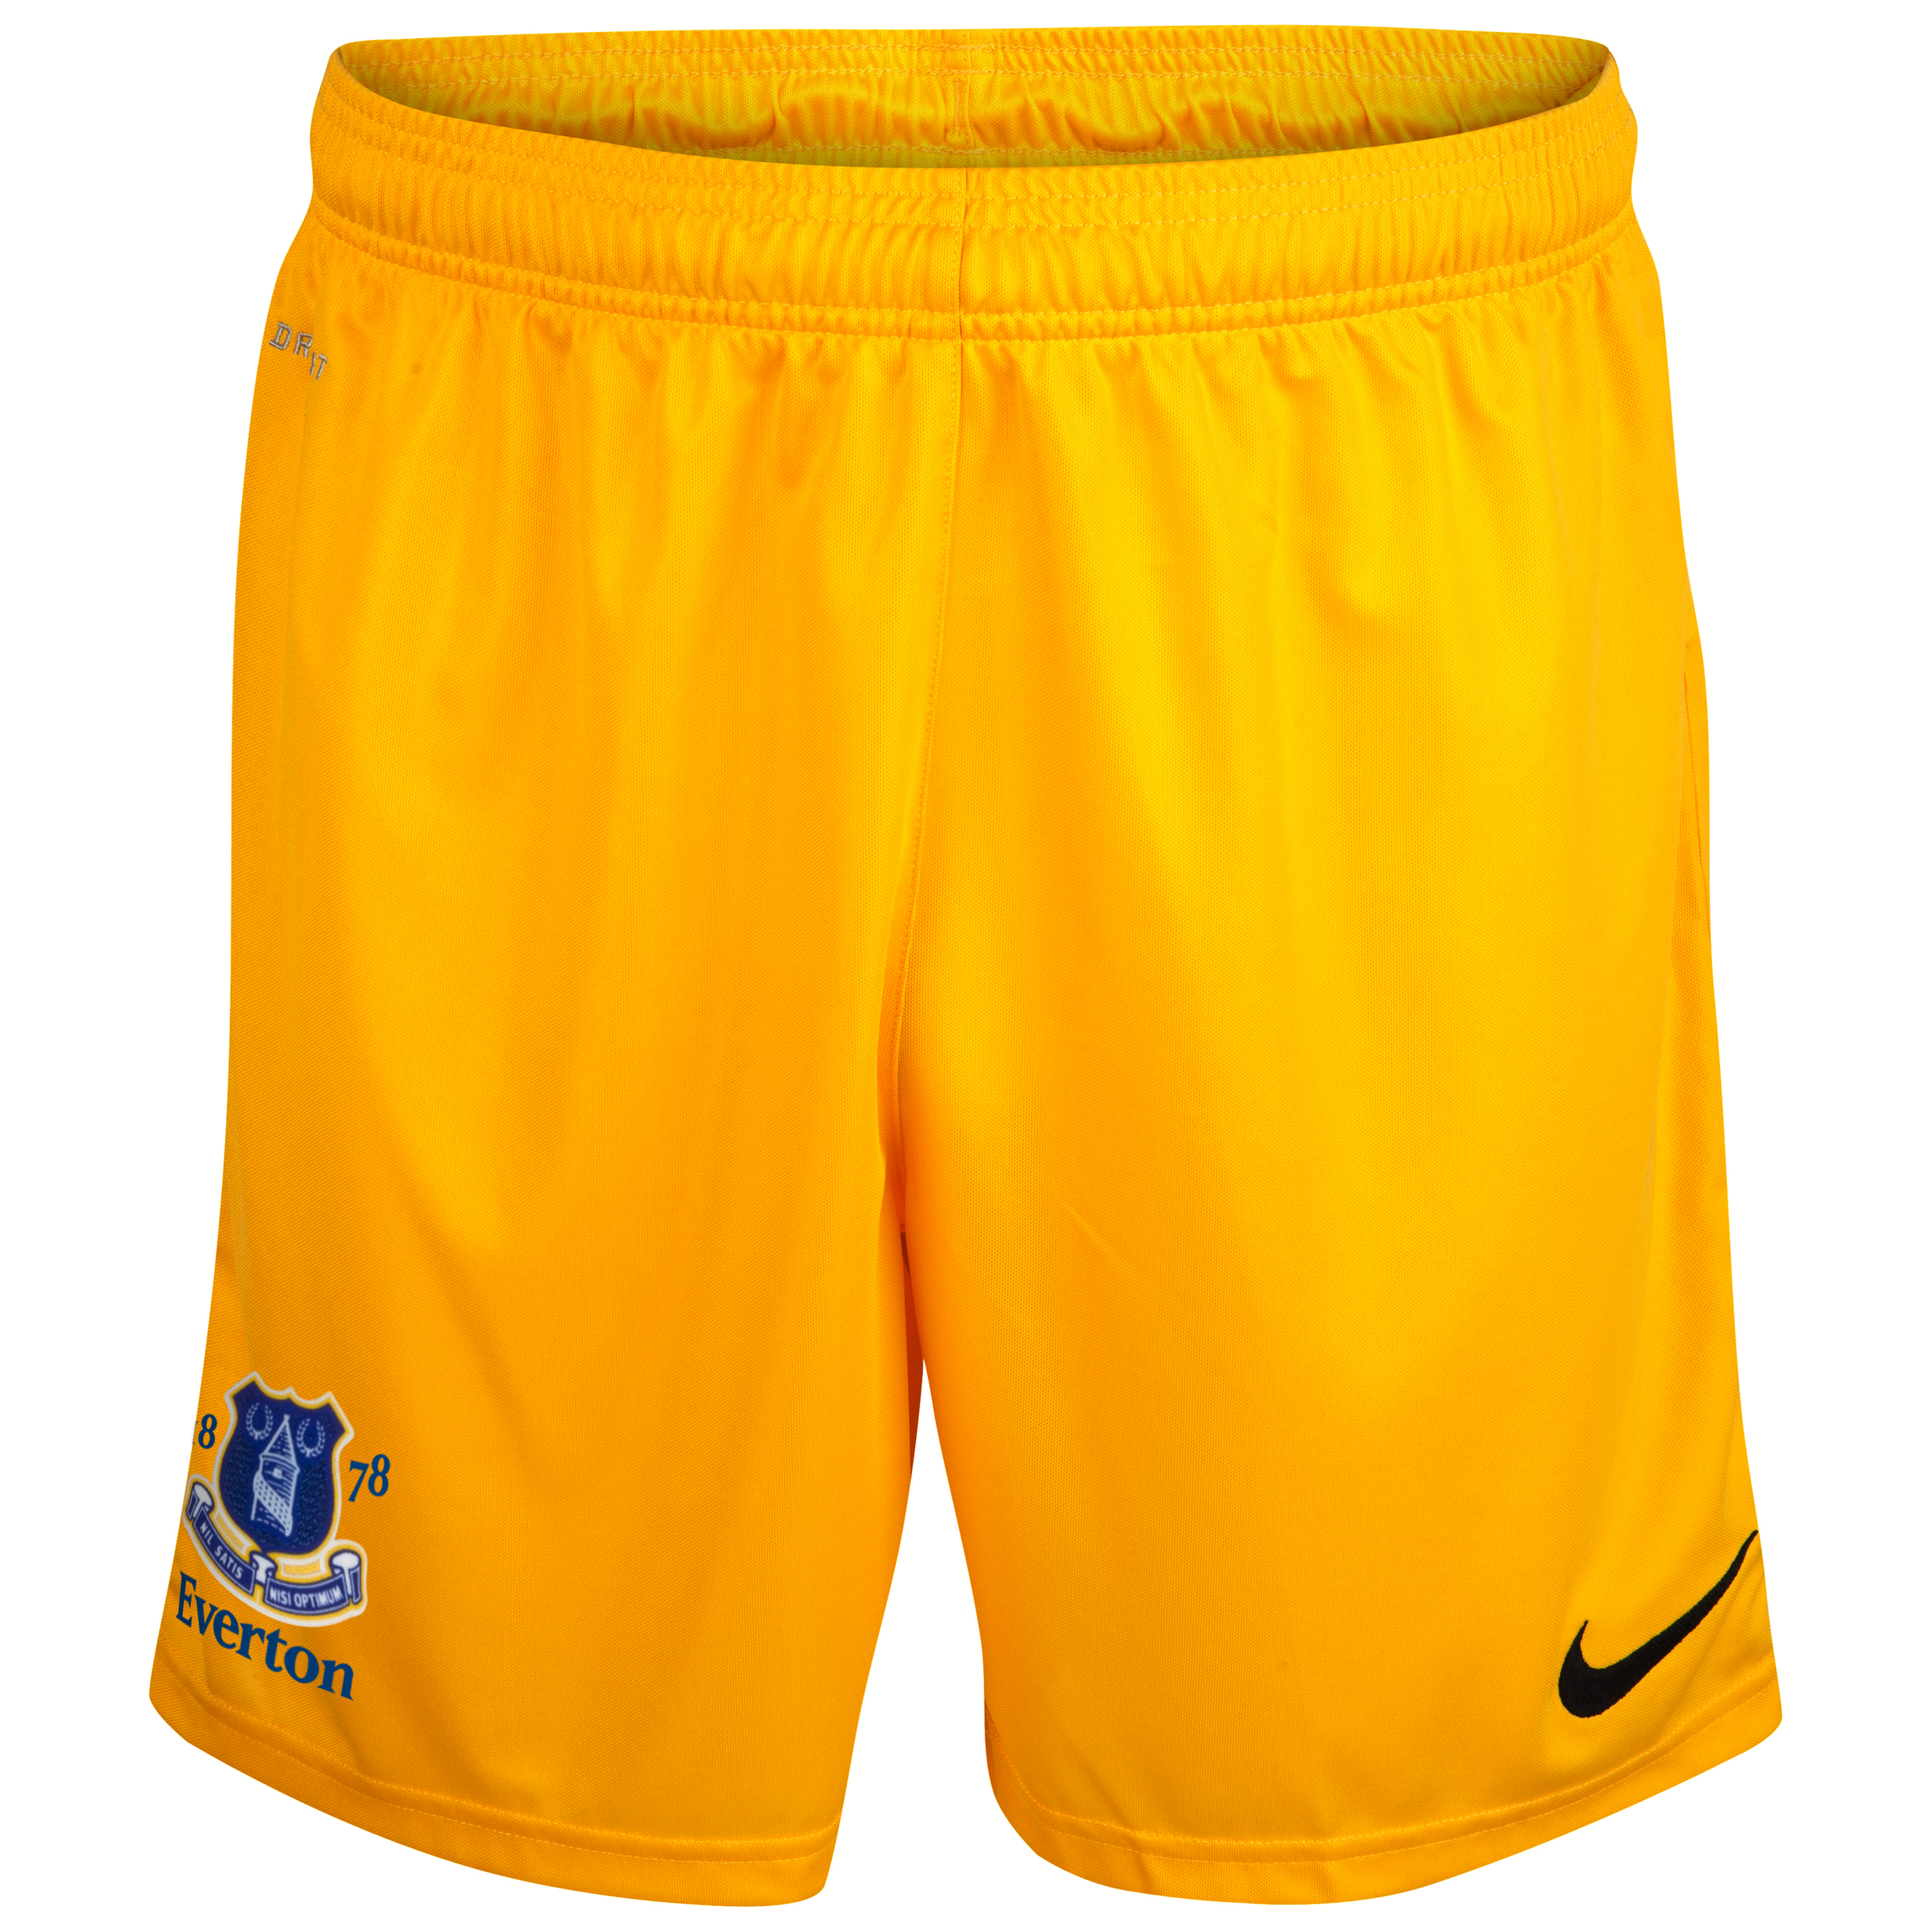 Everton Away Goalkeeper Short 2012/13 - Junior